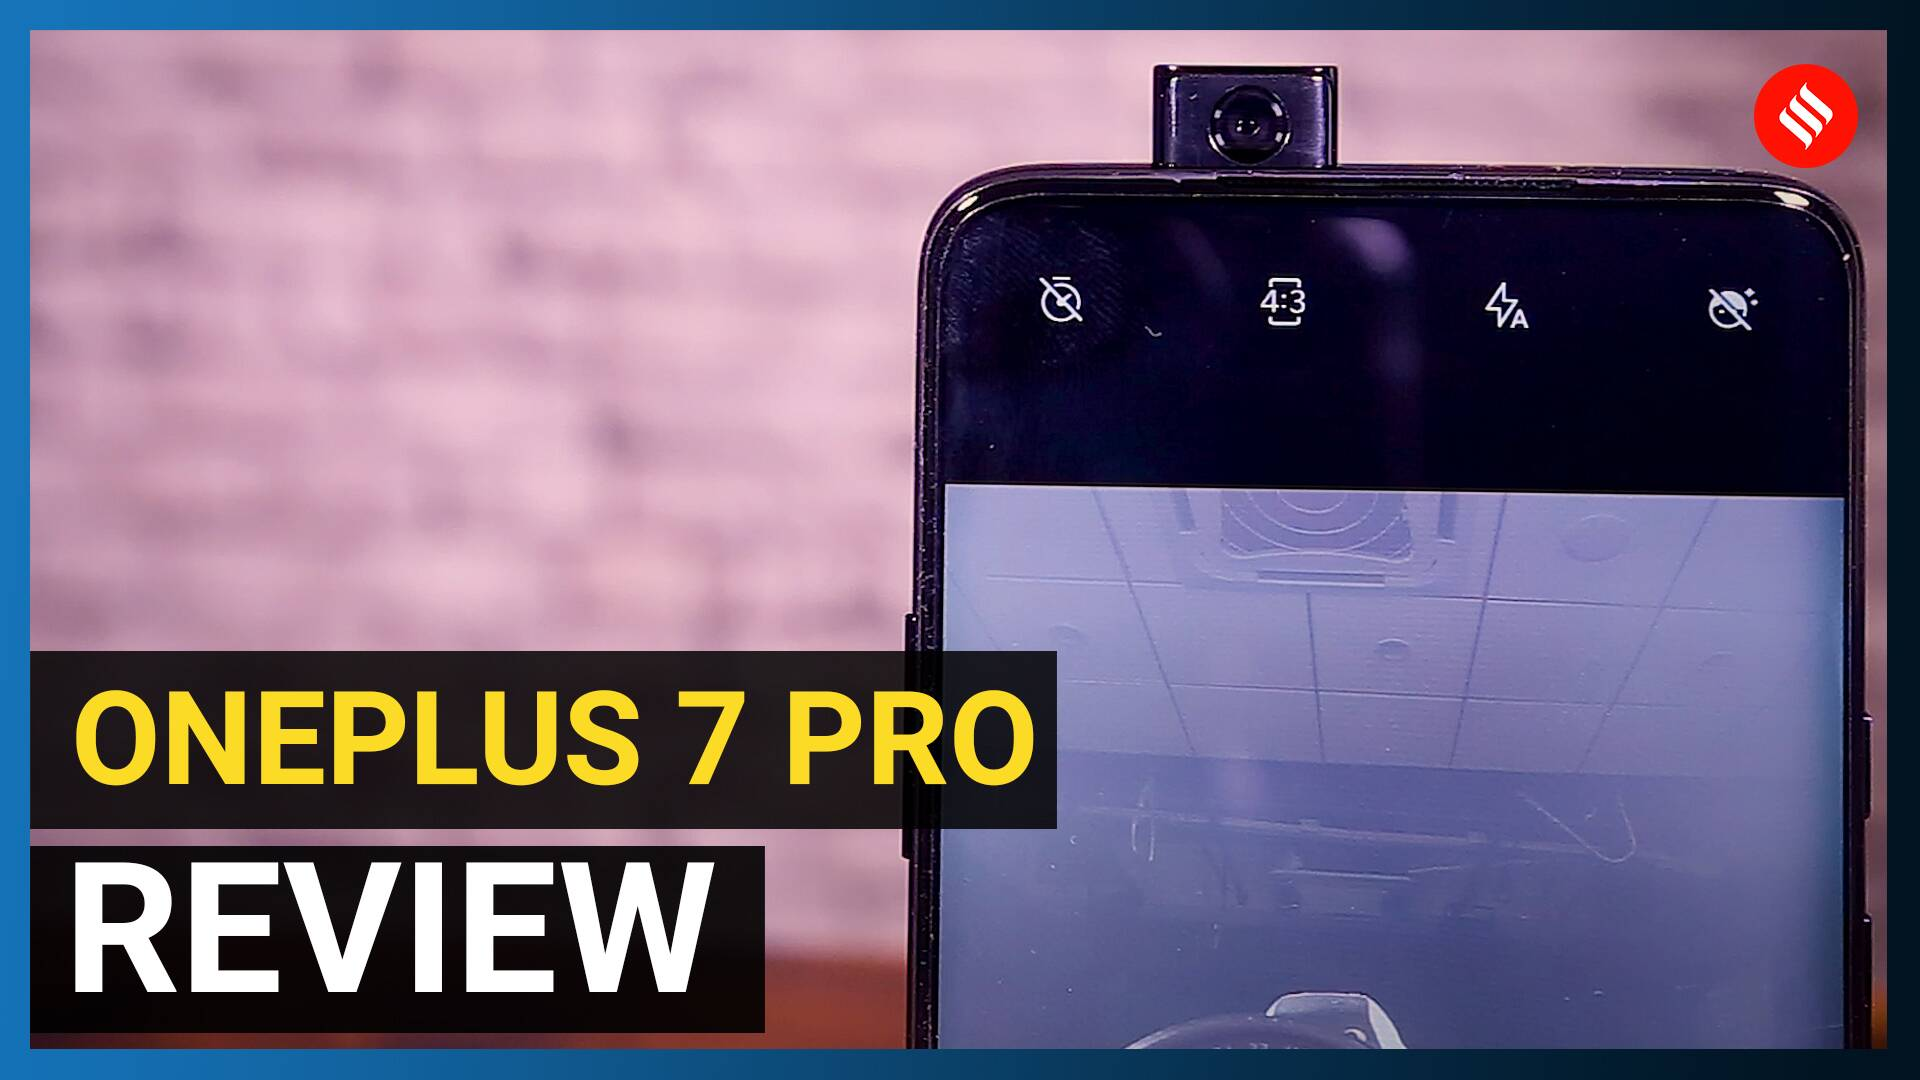 OnePlus 7 Pro Review: Stunning Display and Pop-up Selfie